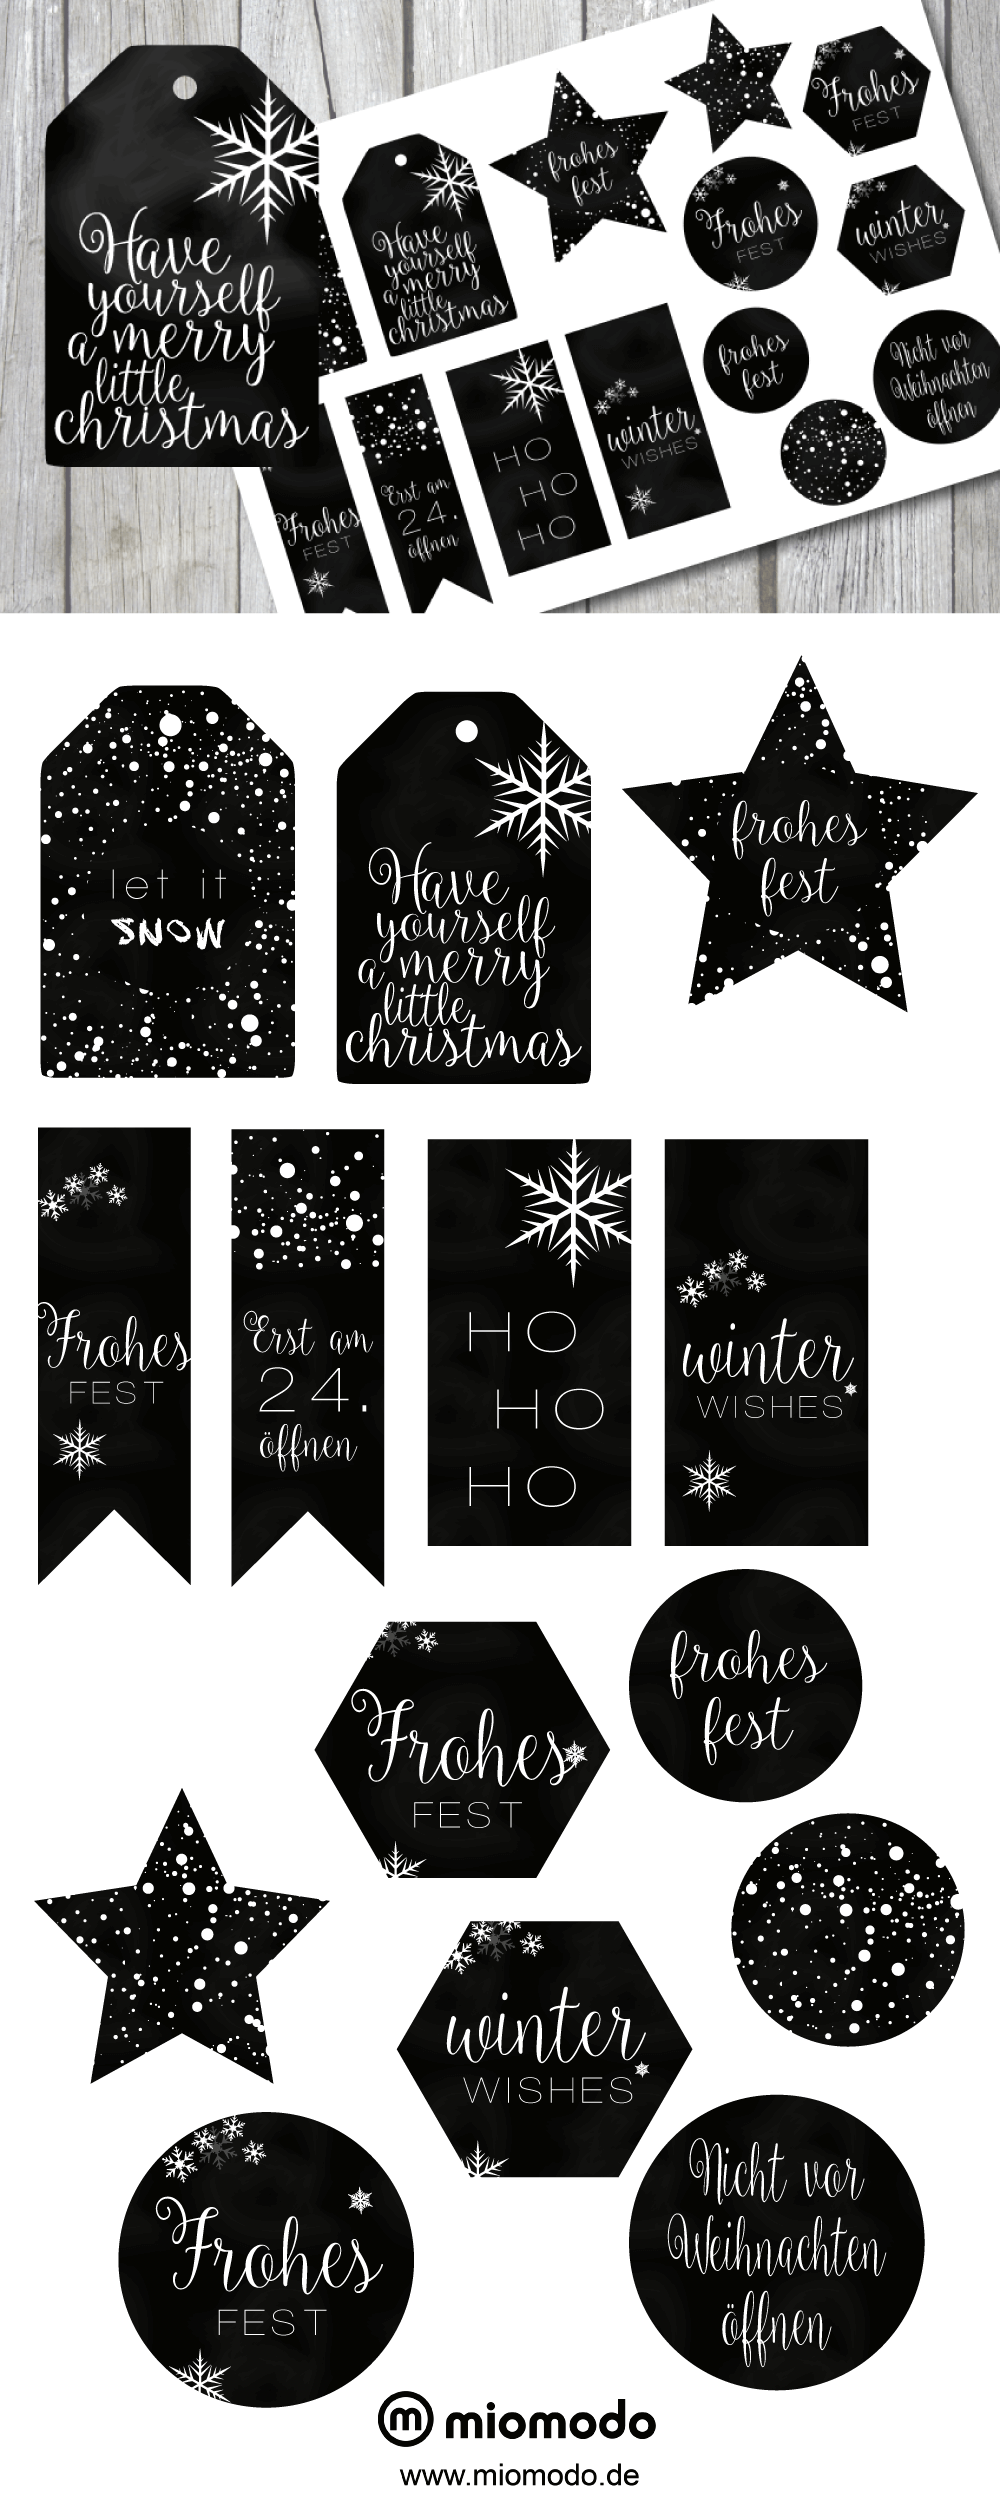 geschenkanh nger zum ausdrucken weihnachten miomodo blog miomodo blog freebies pinterest. Black Bedroom Furniture Sets. Home Design Ideas